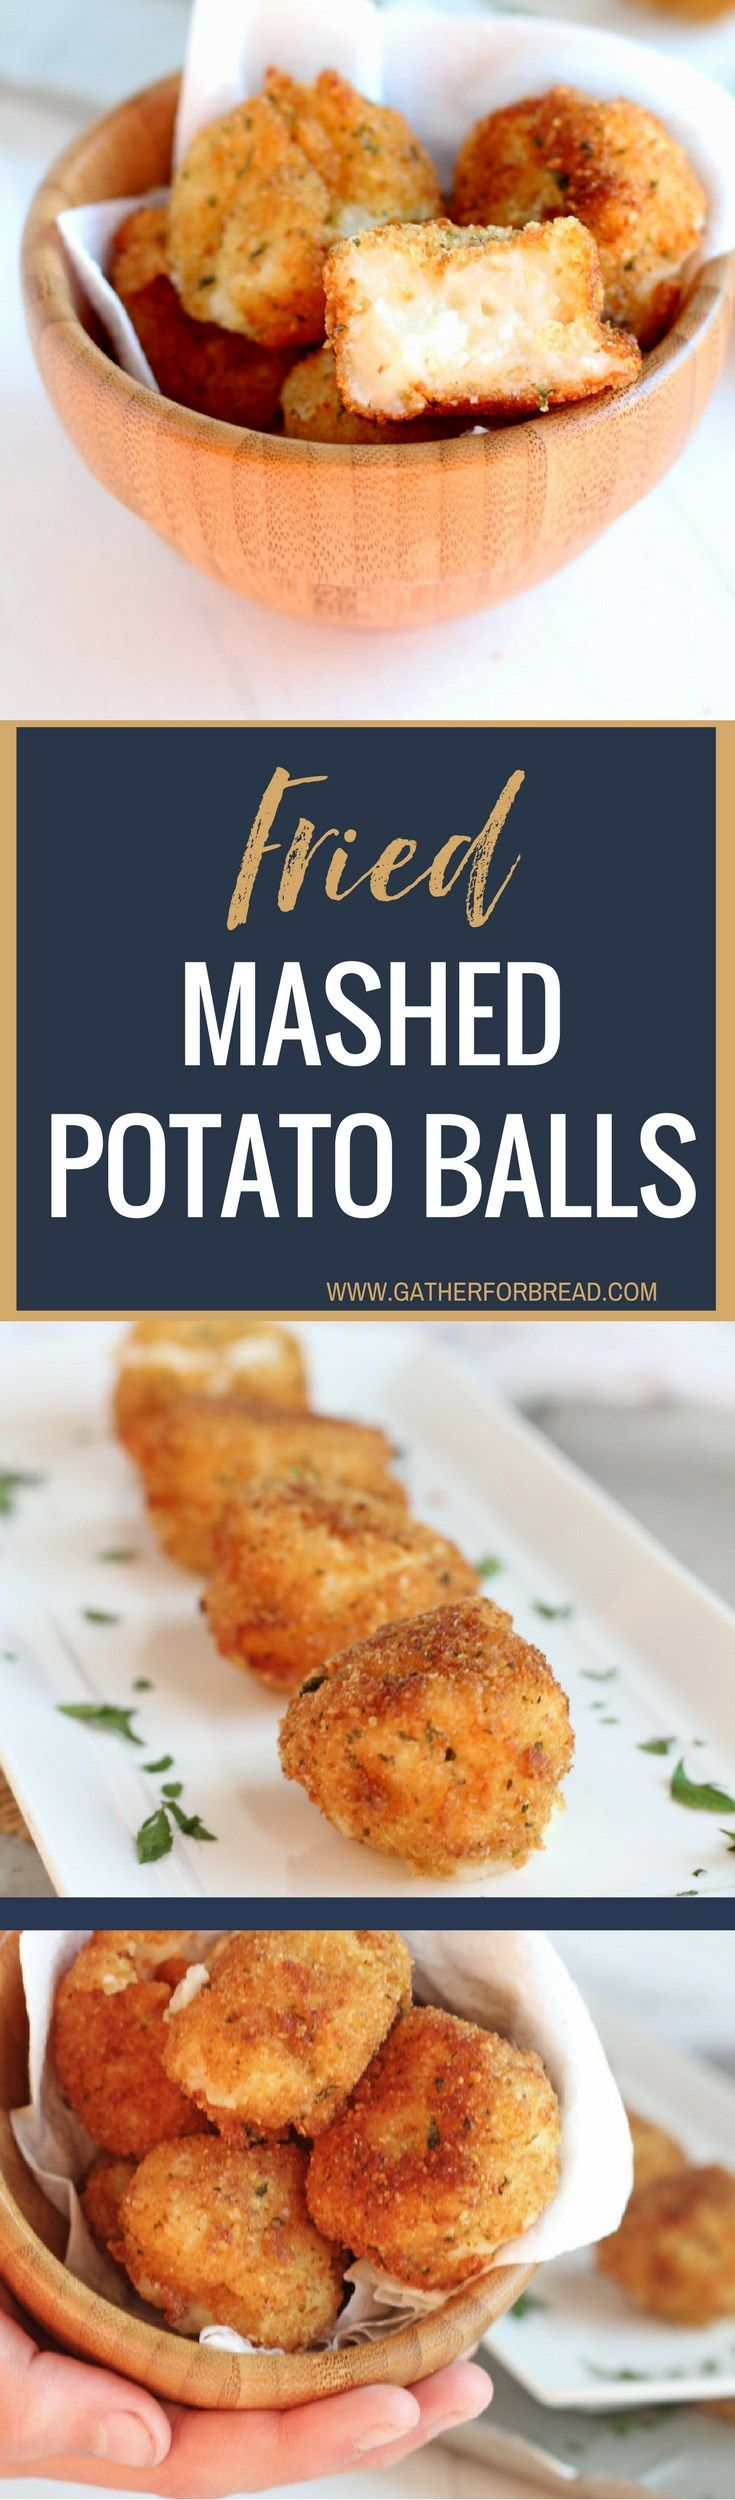 Fried Mashed Potato Balls - Leftover mashed potatoes make these perfect crisp bites for a tasty side dish or appetizer. Crunchy outside, stuffed with a creamy inside.